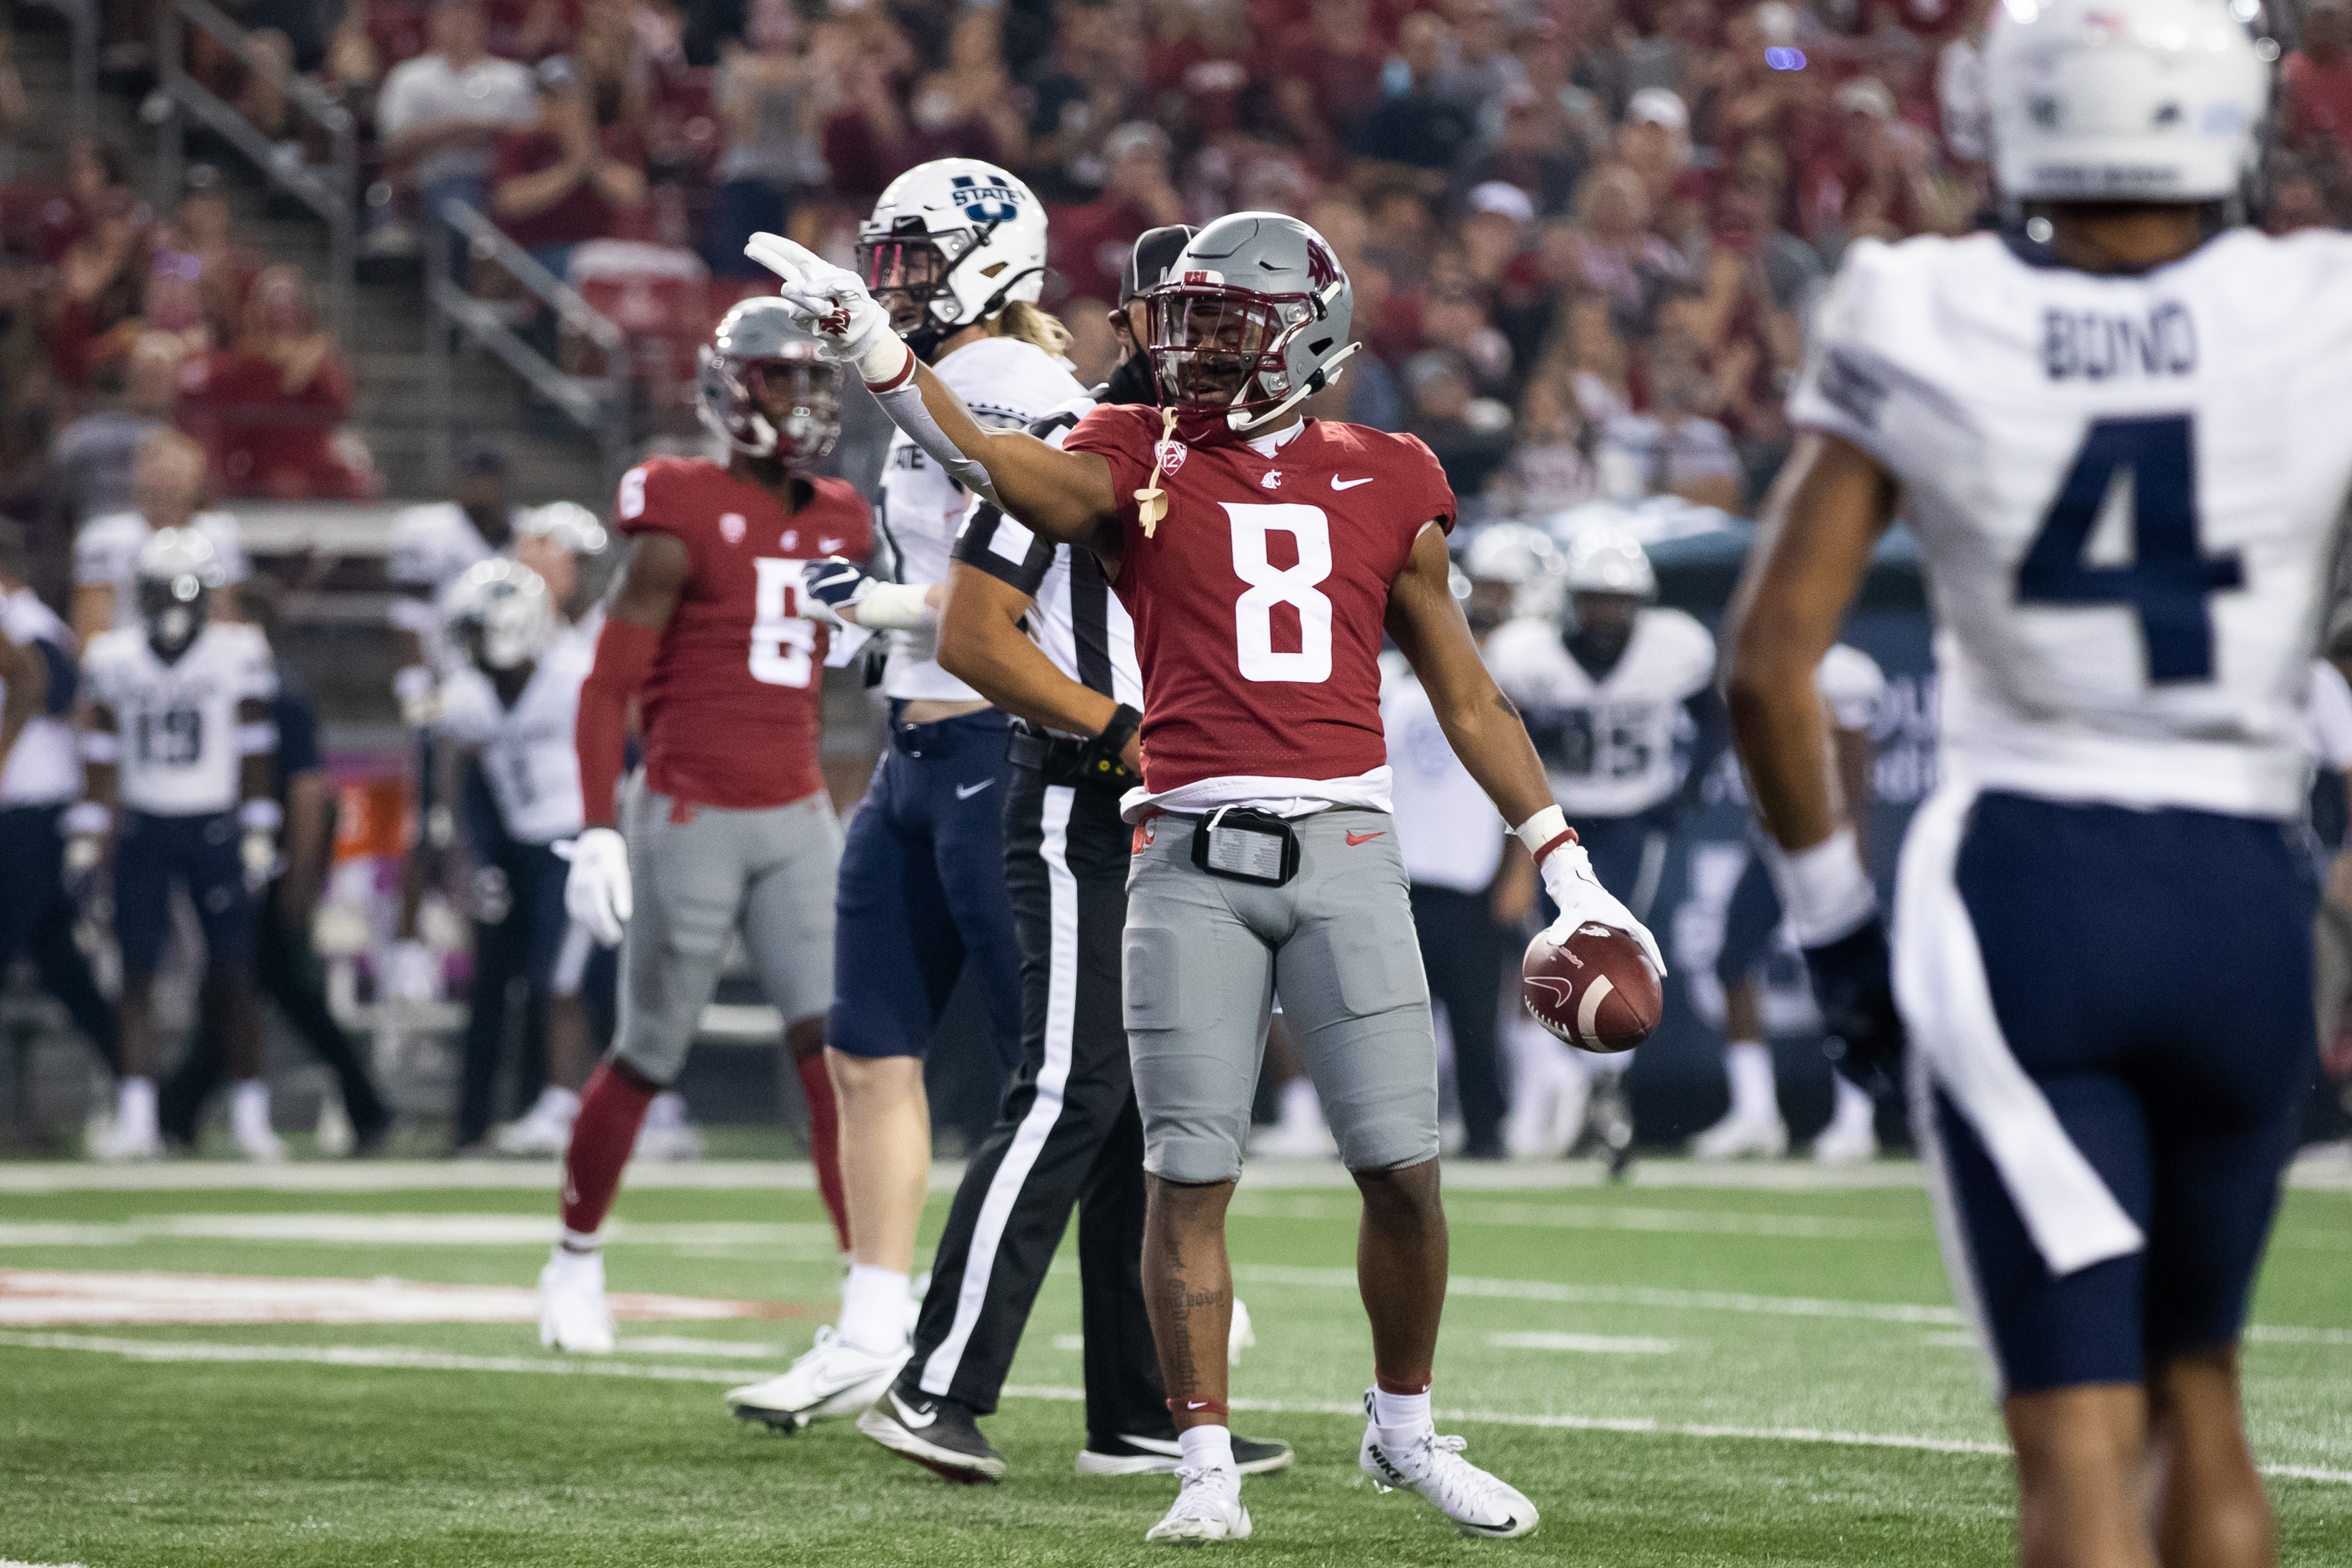 PULLMAN, WA - SEPTEMBER 4: Washington State wide receiver Calvin Jackson Jr (8) signals for a first down after a catch during the first half of a non-conference matchup between the Utah State Aggies and the Washington State Cougars on September 4, 2021, at Martin Stadium in Pullman, WA.